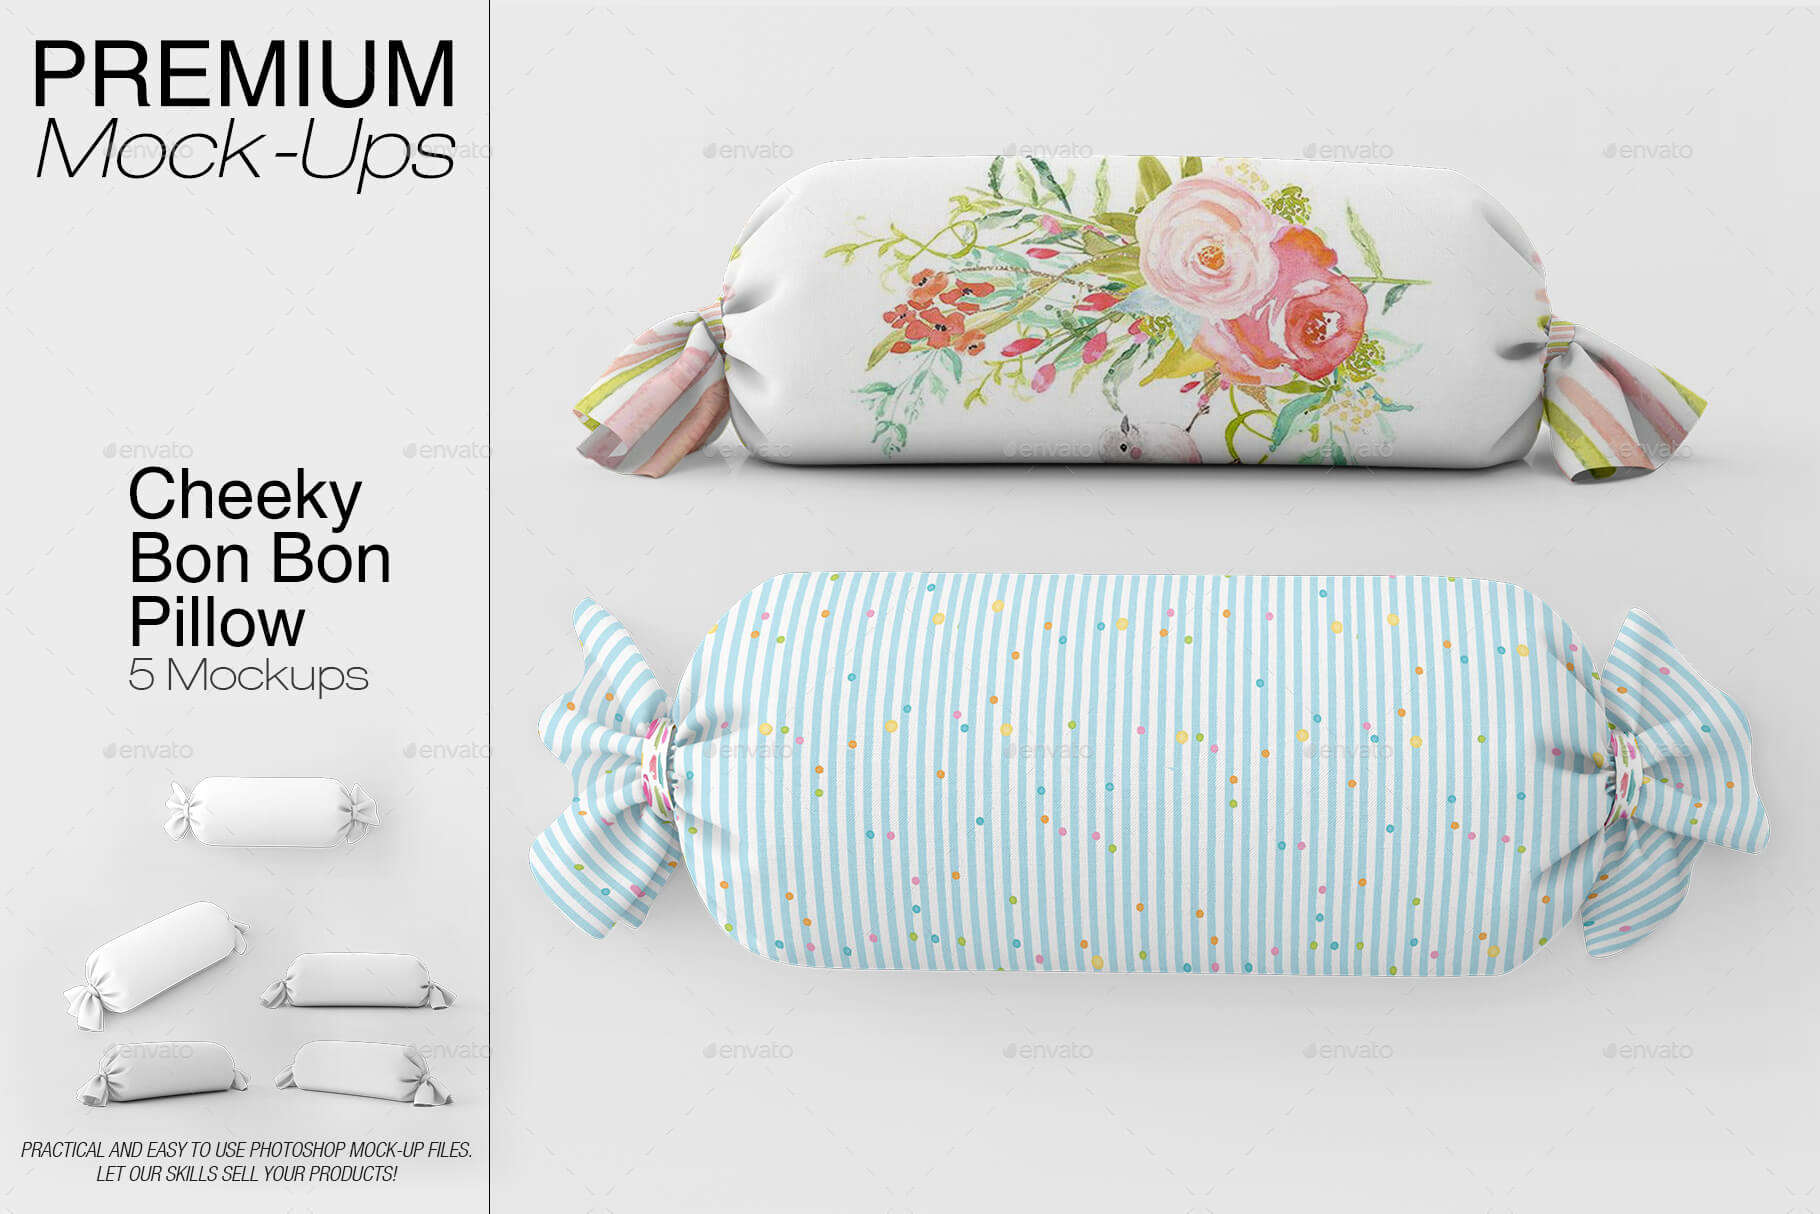 Premium Cushion Design template